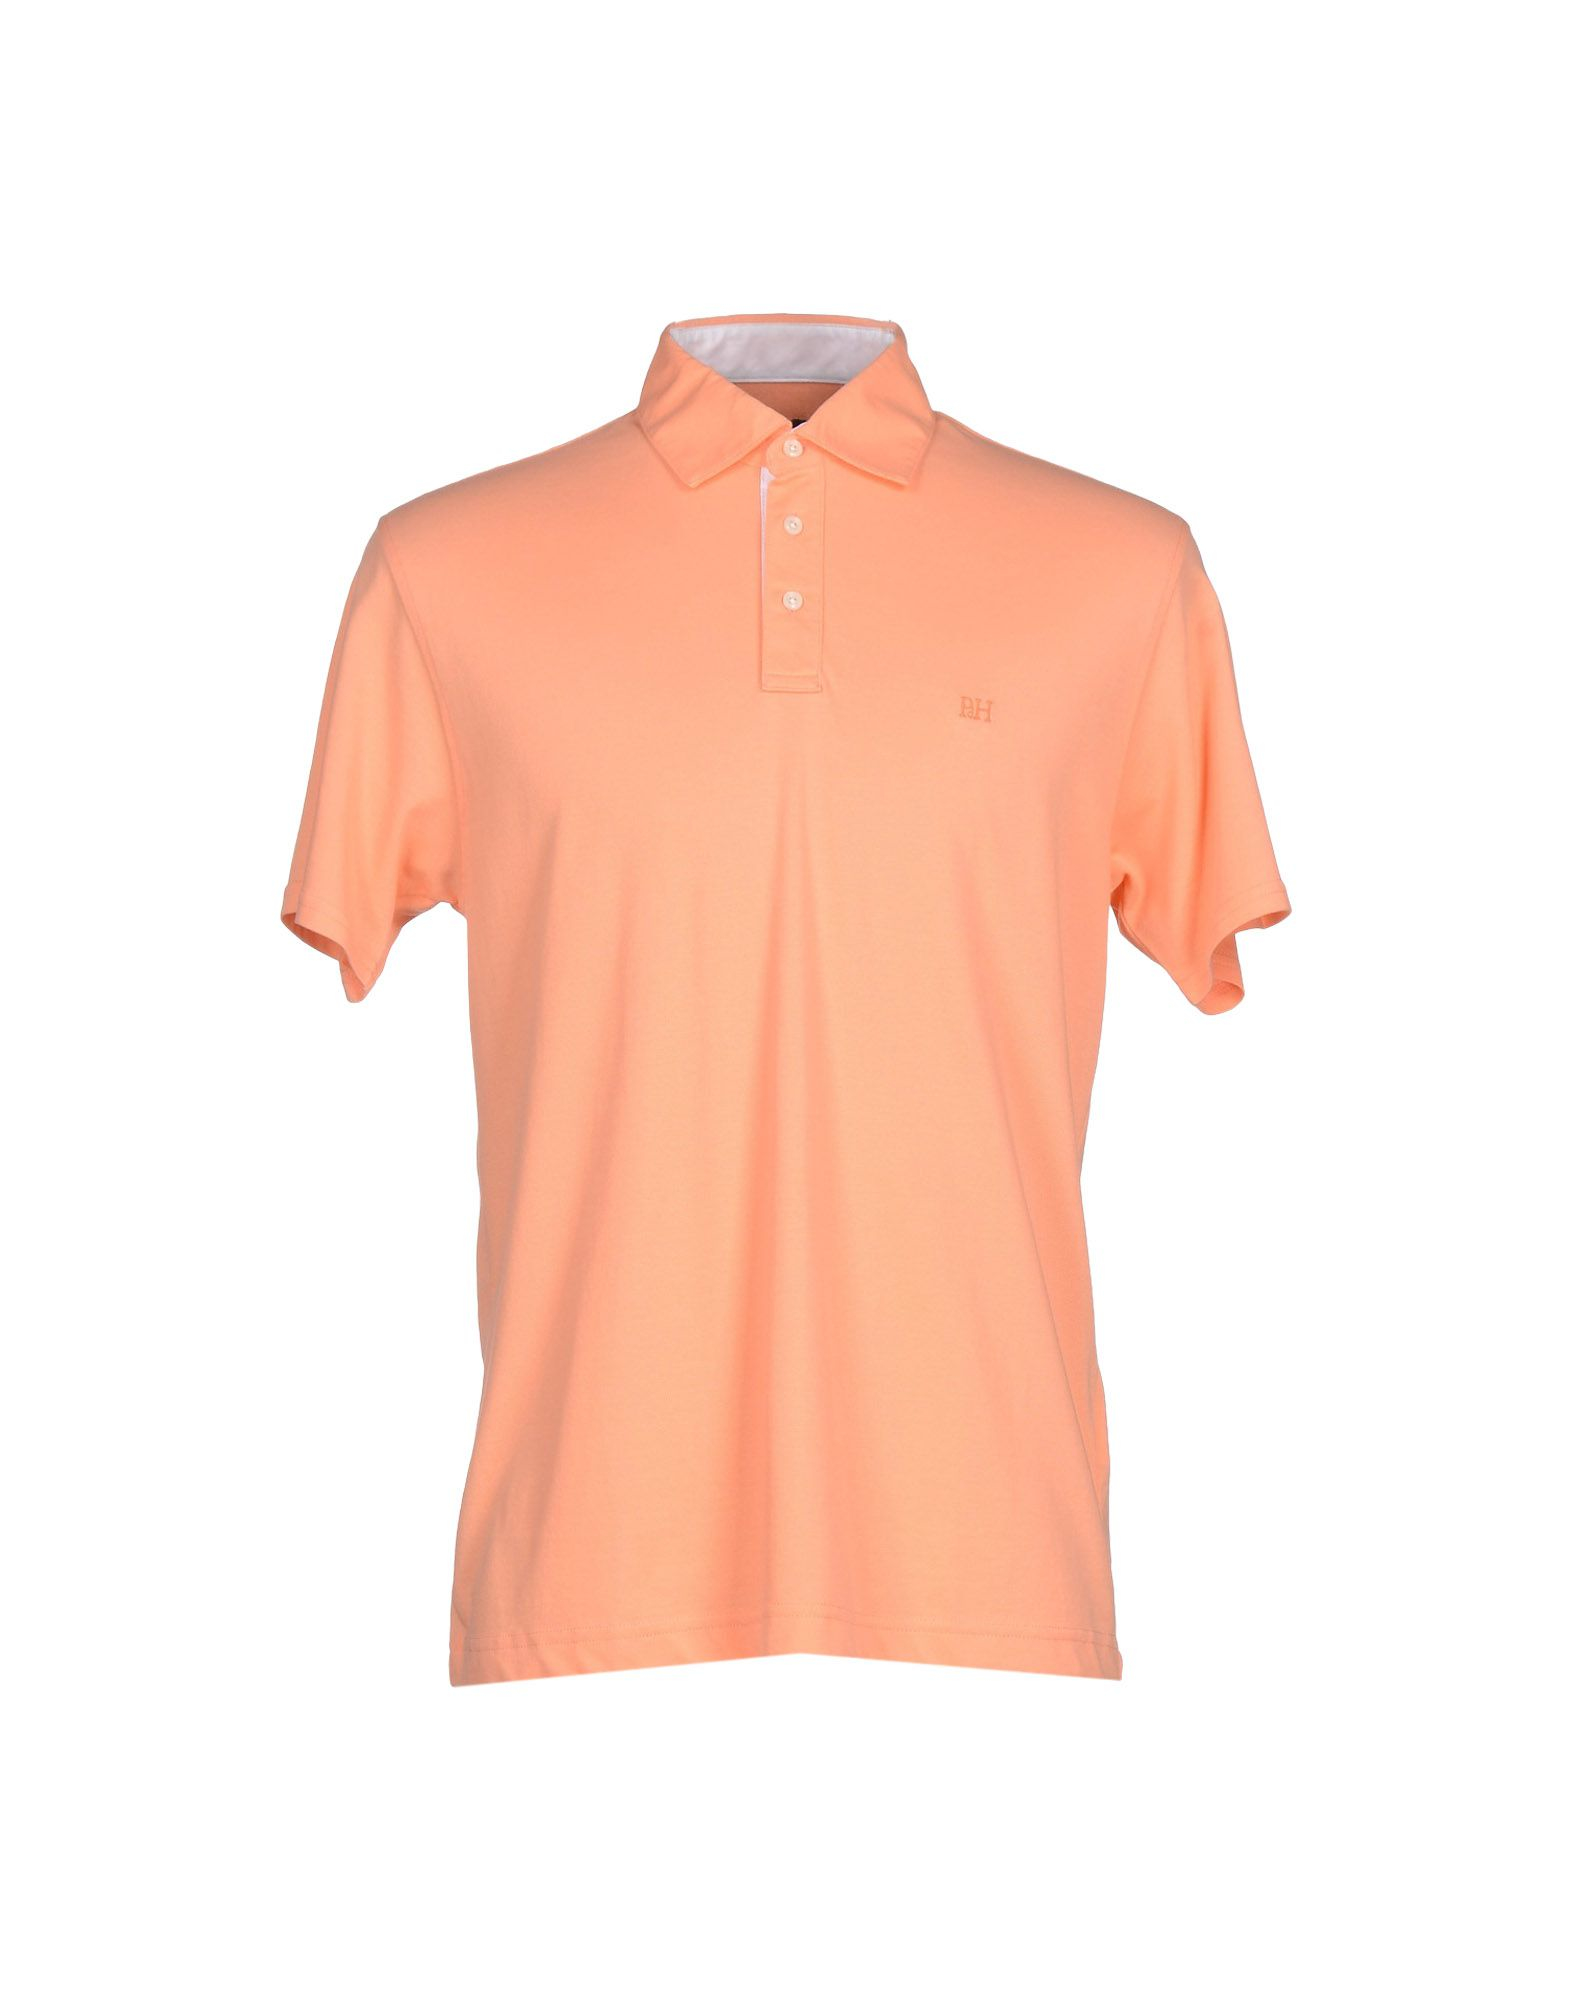 Pedro Del Hierro Madrid Polo Shirt In Pink For Men Lyst